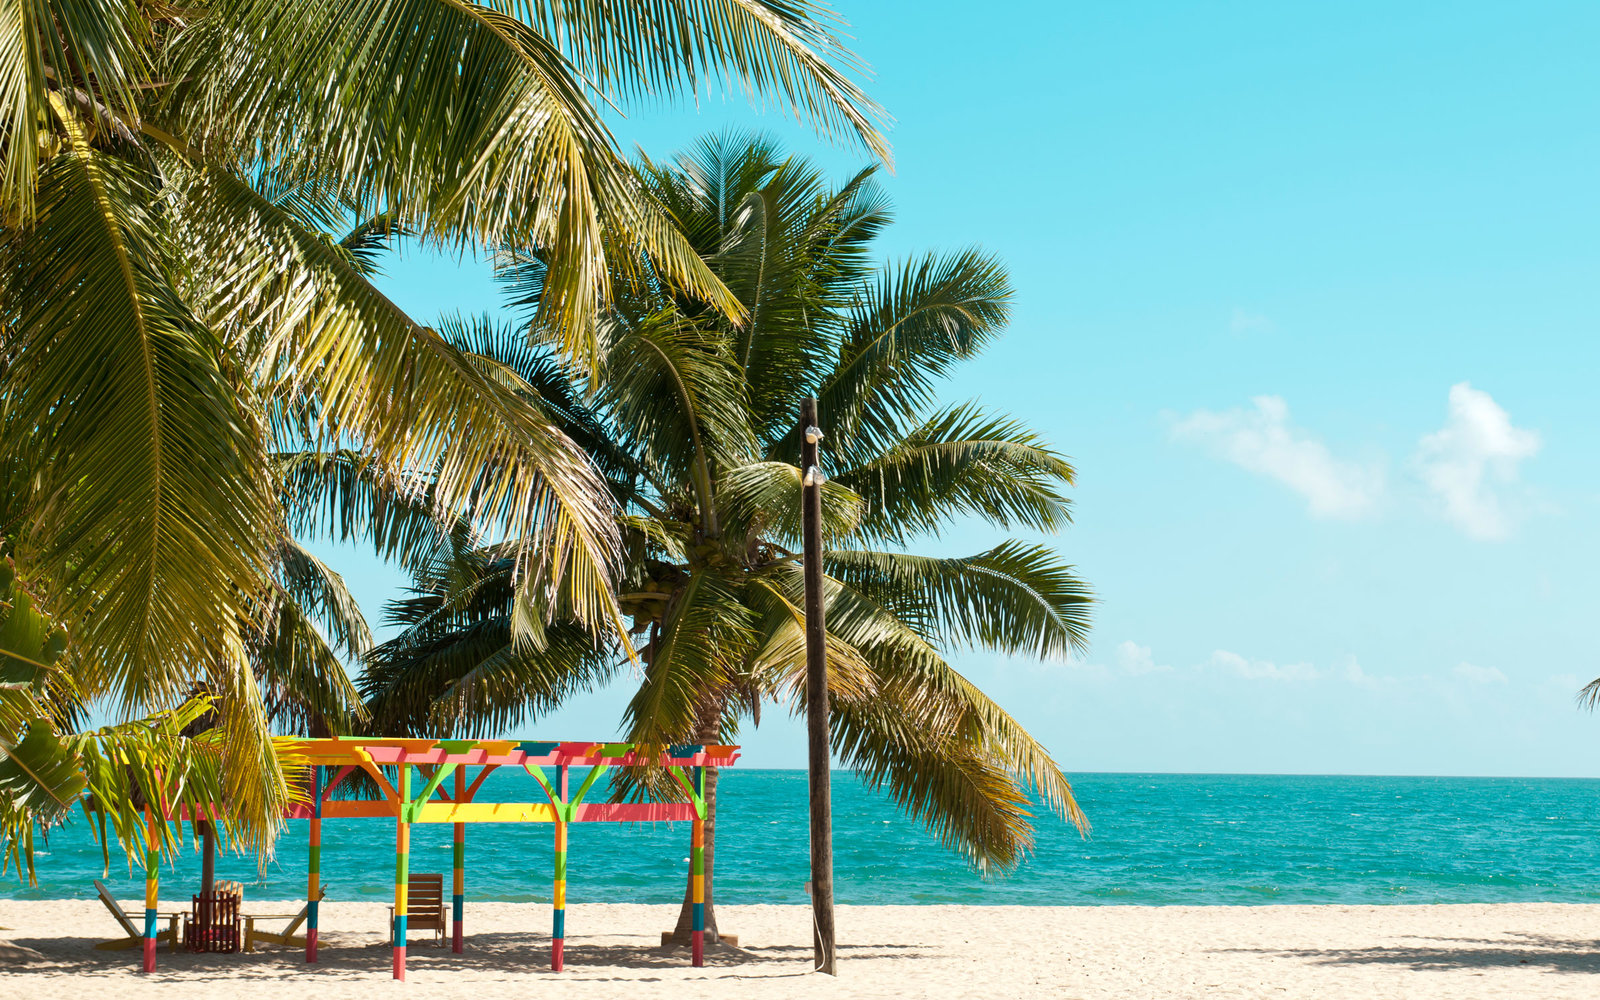 Postcards from Belize